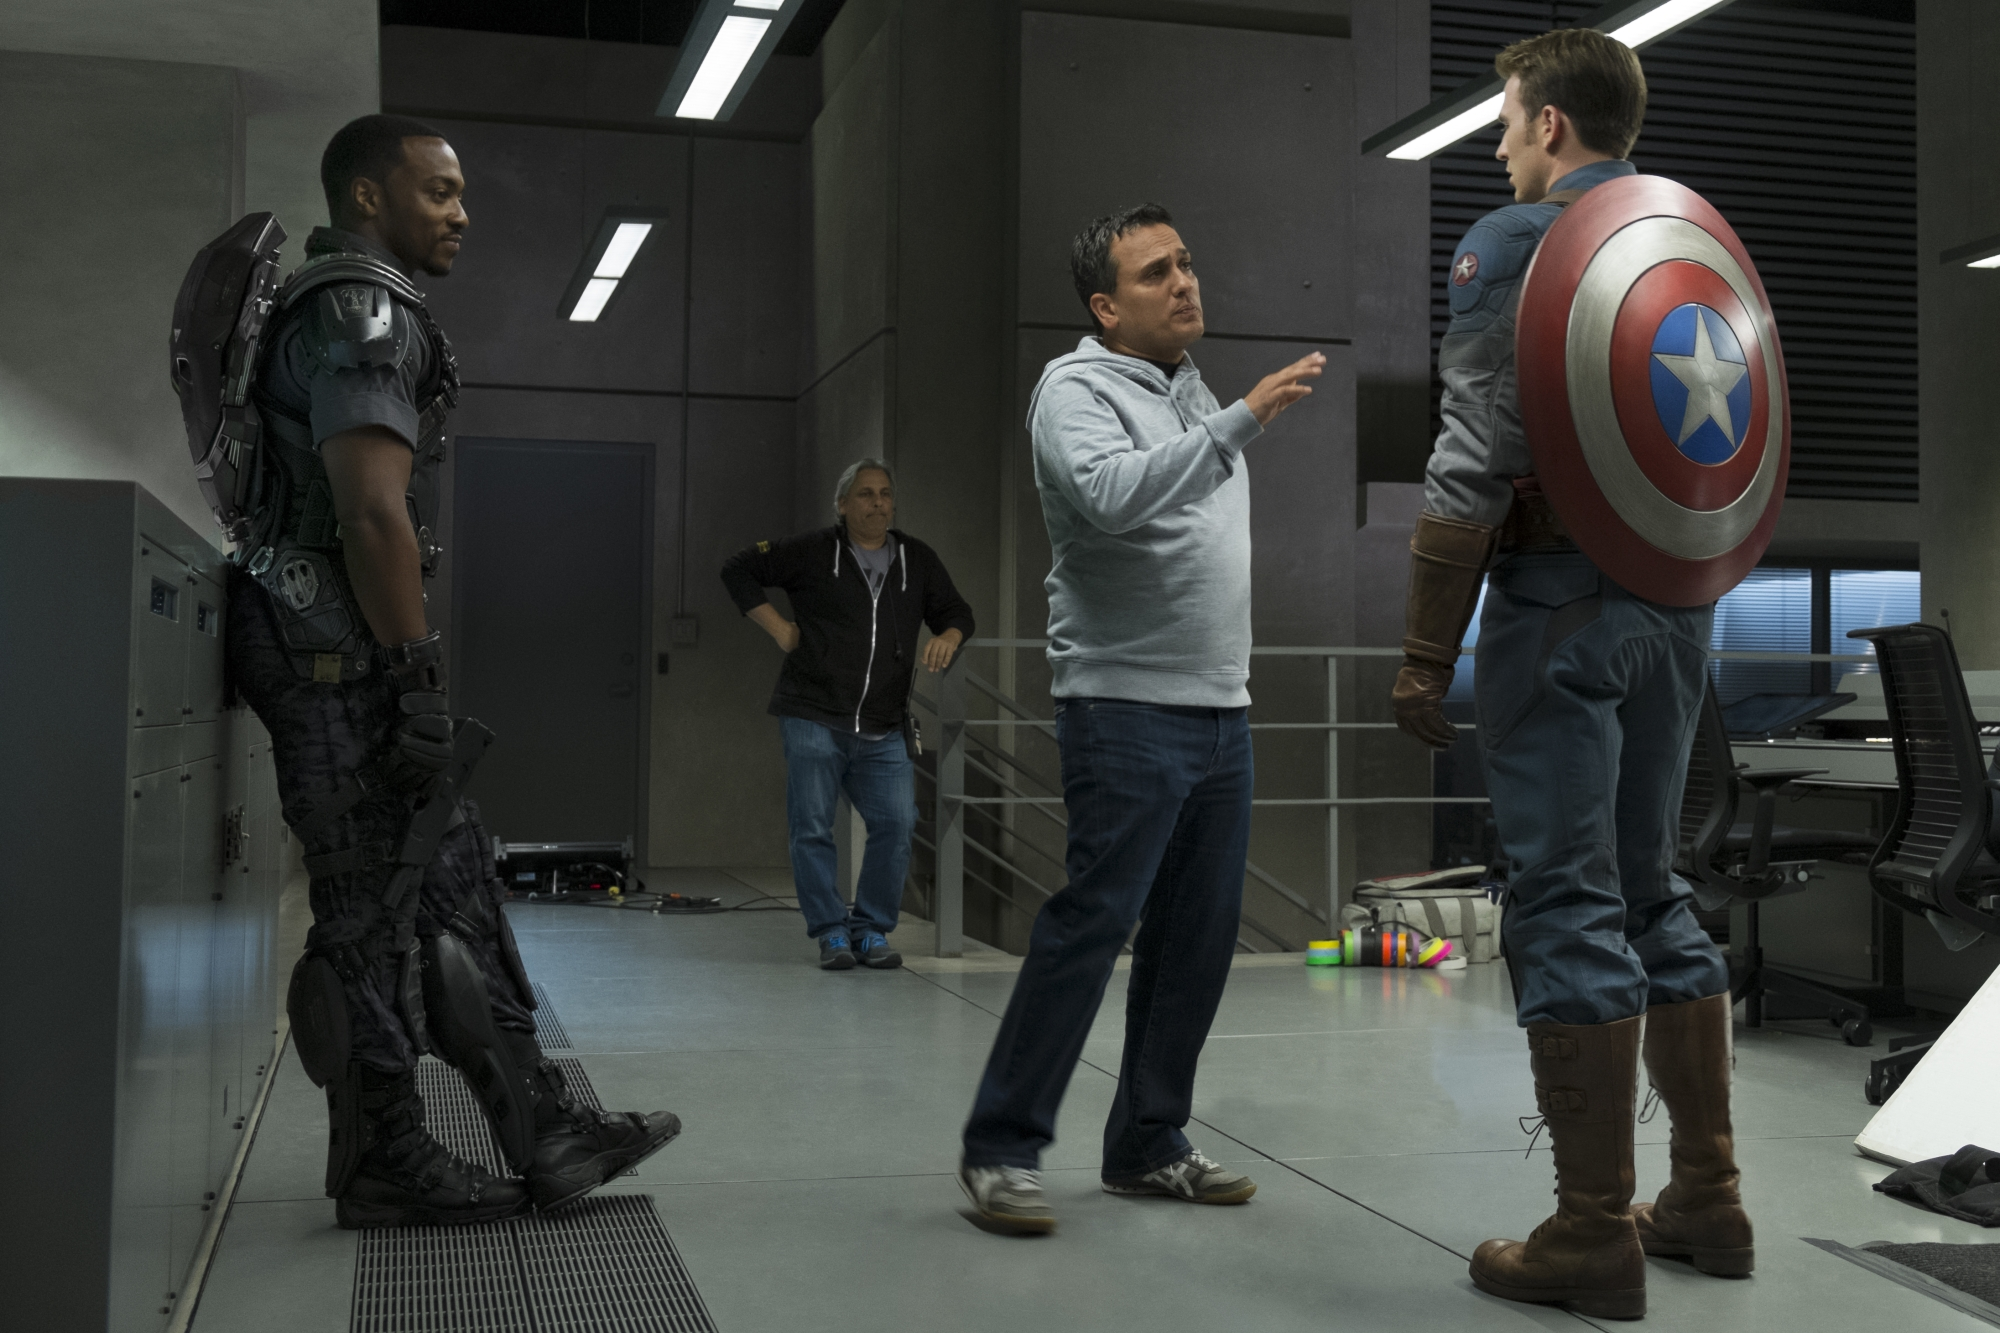 Who do you prefer to be Captain America? Bucky or Falcon?